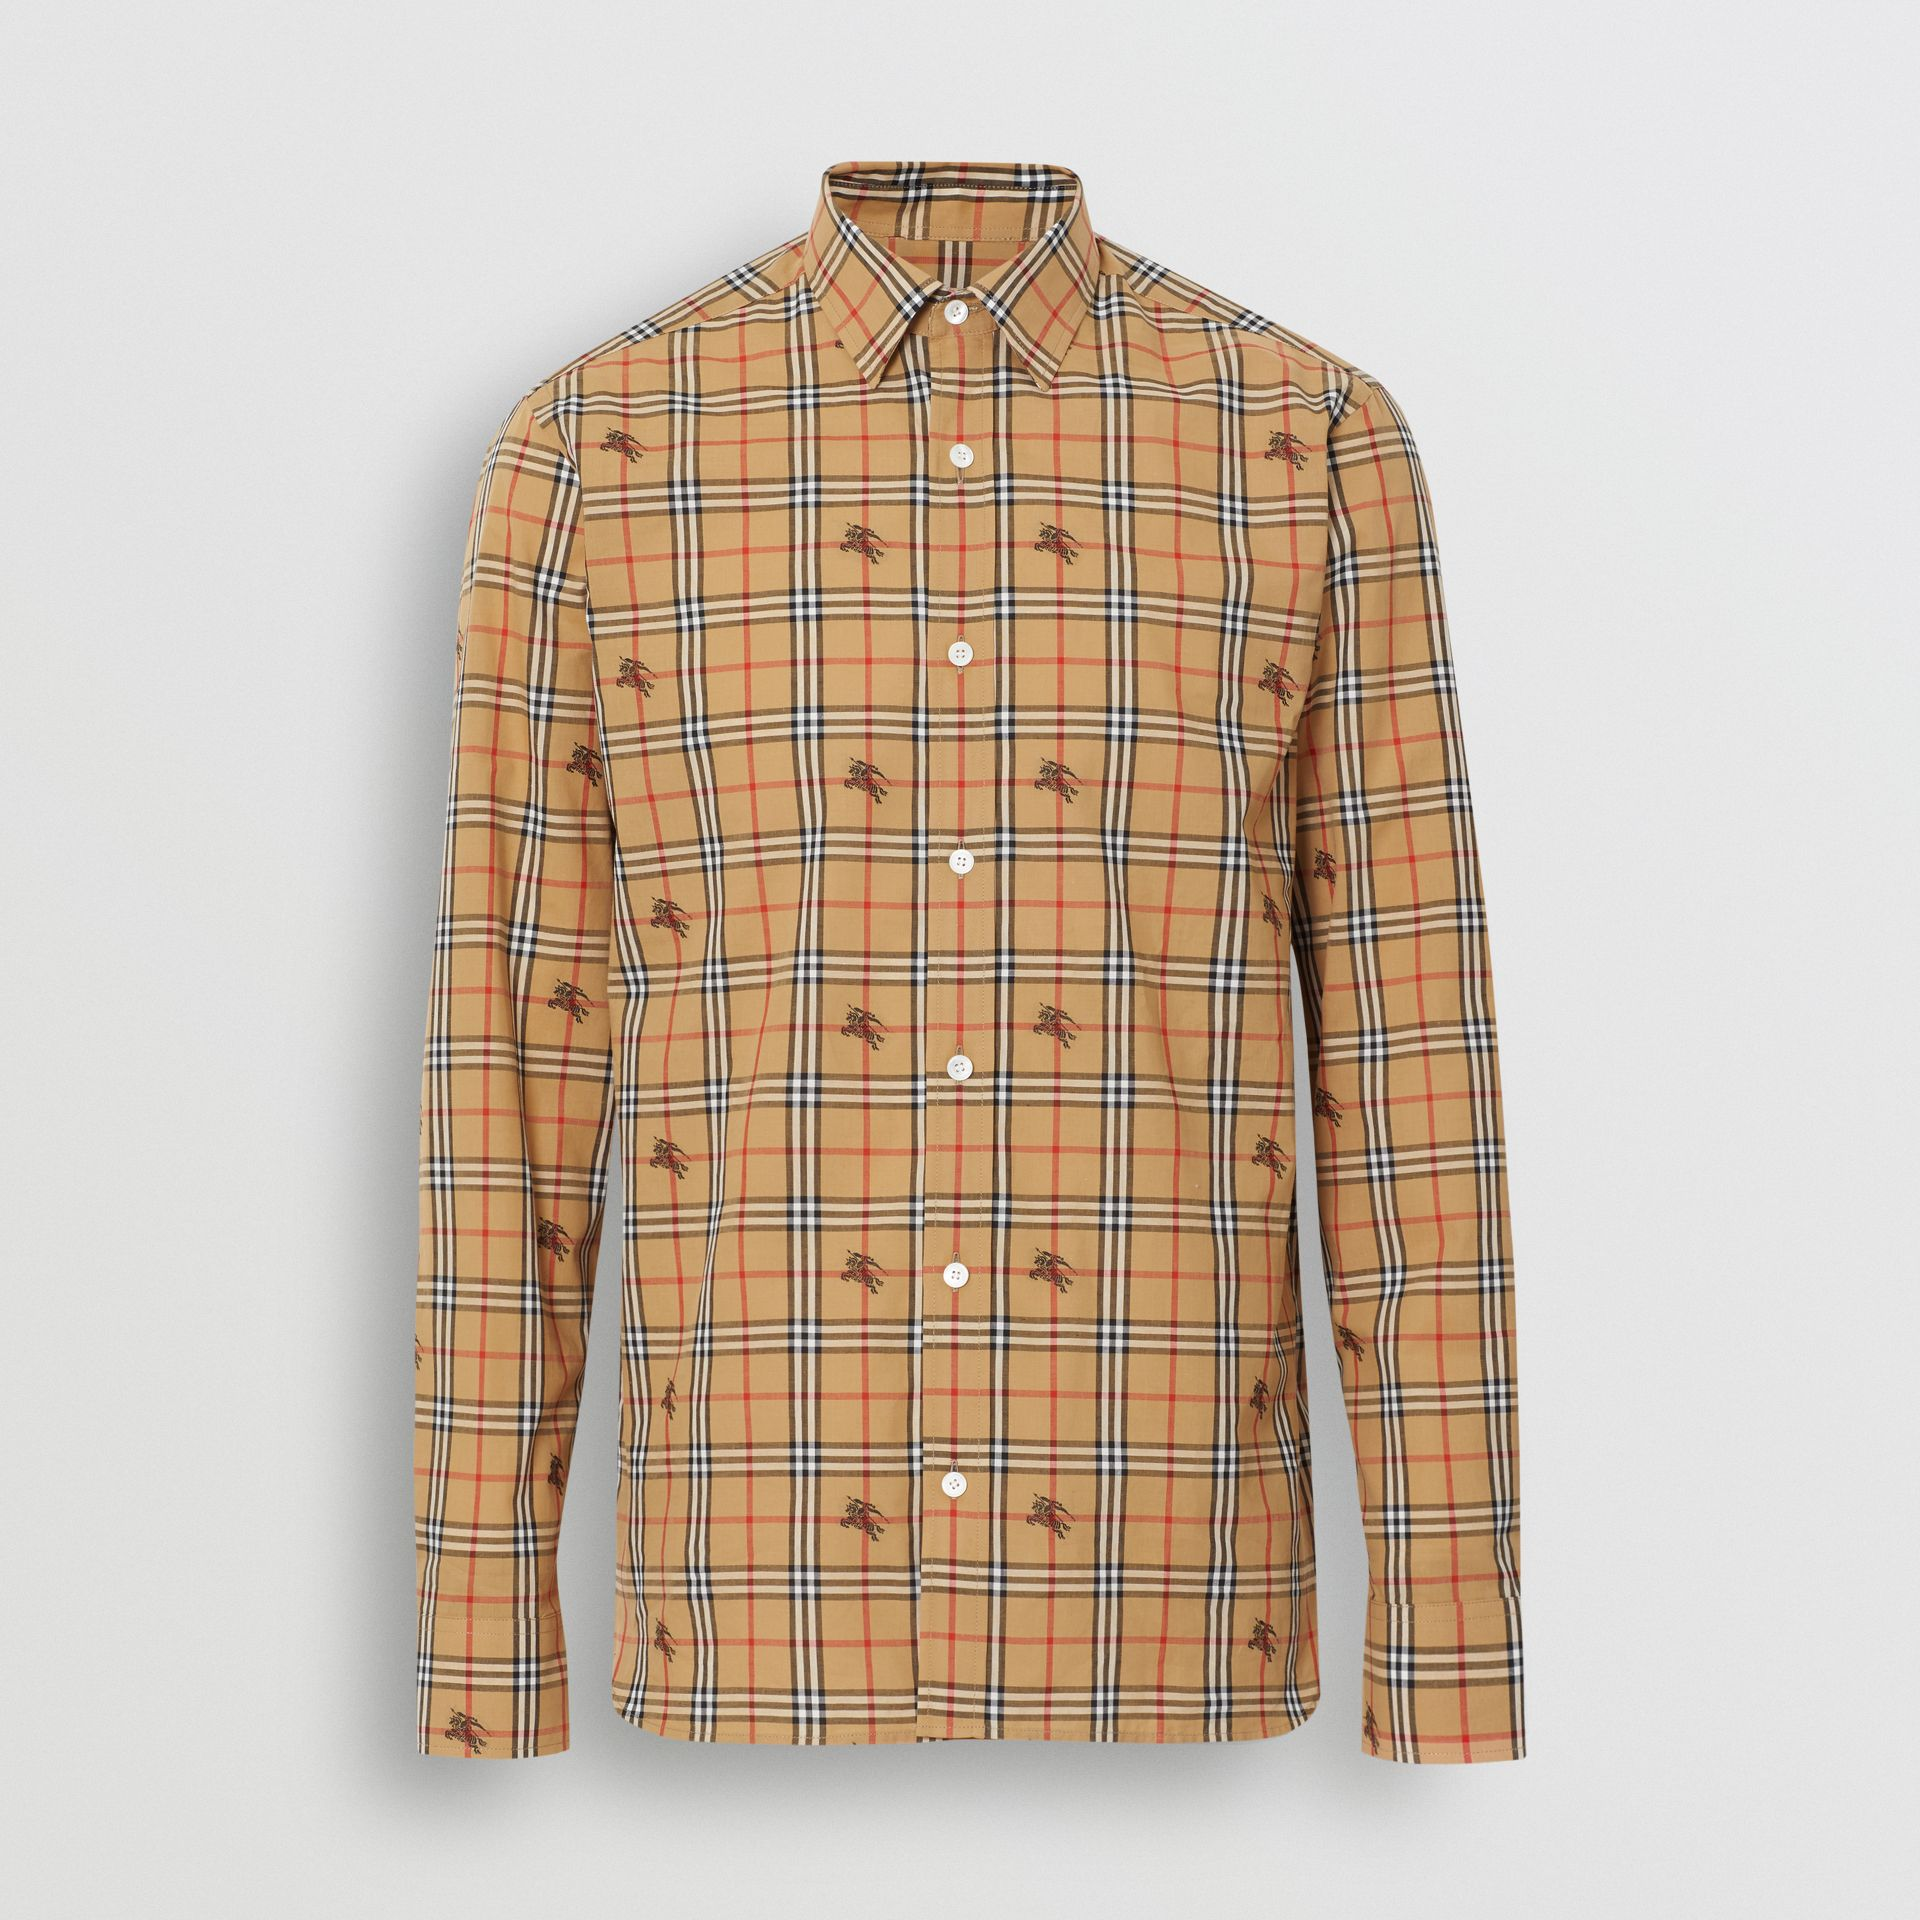 Equestrian Knight Check Cotton Shirt in Camel - Men | Burberry - gallery image 3